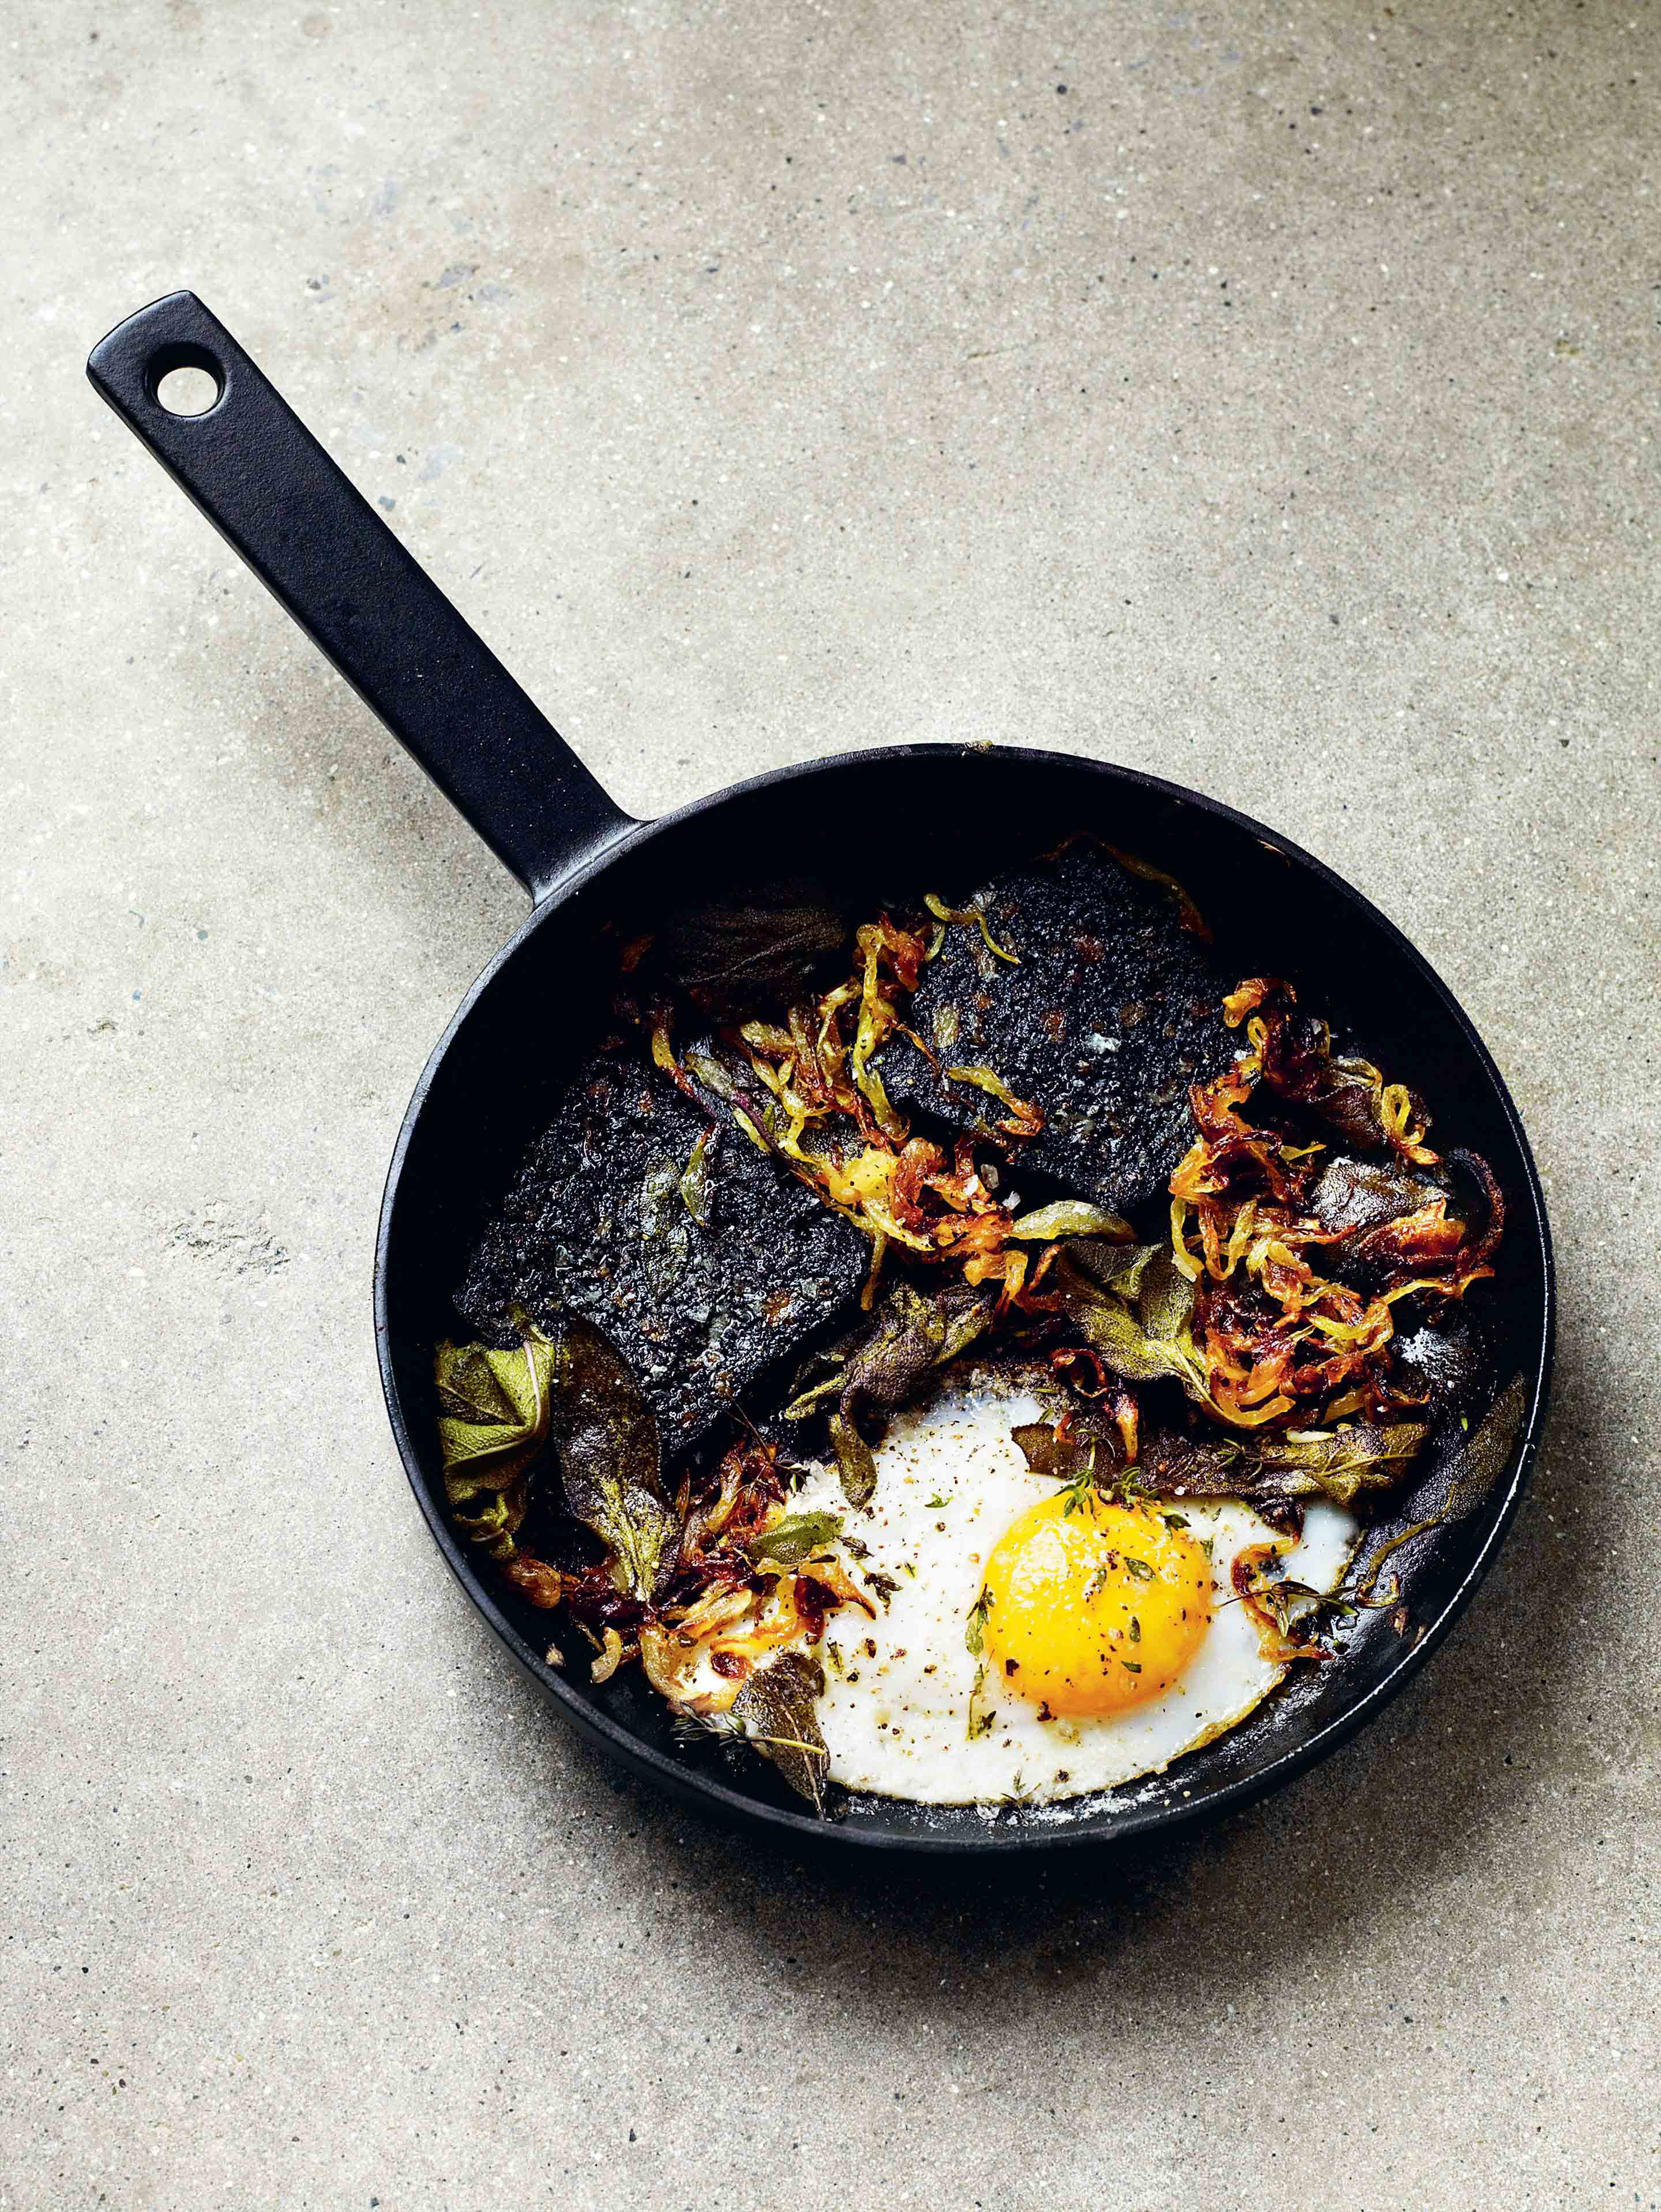 Black pudding with sage, onions & duck eggs